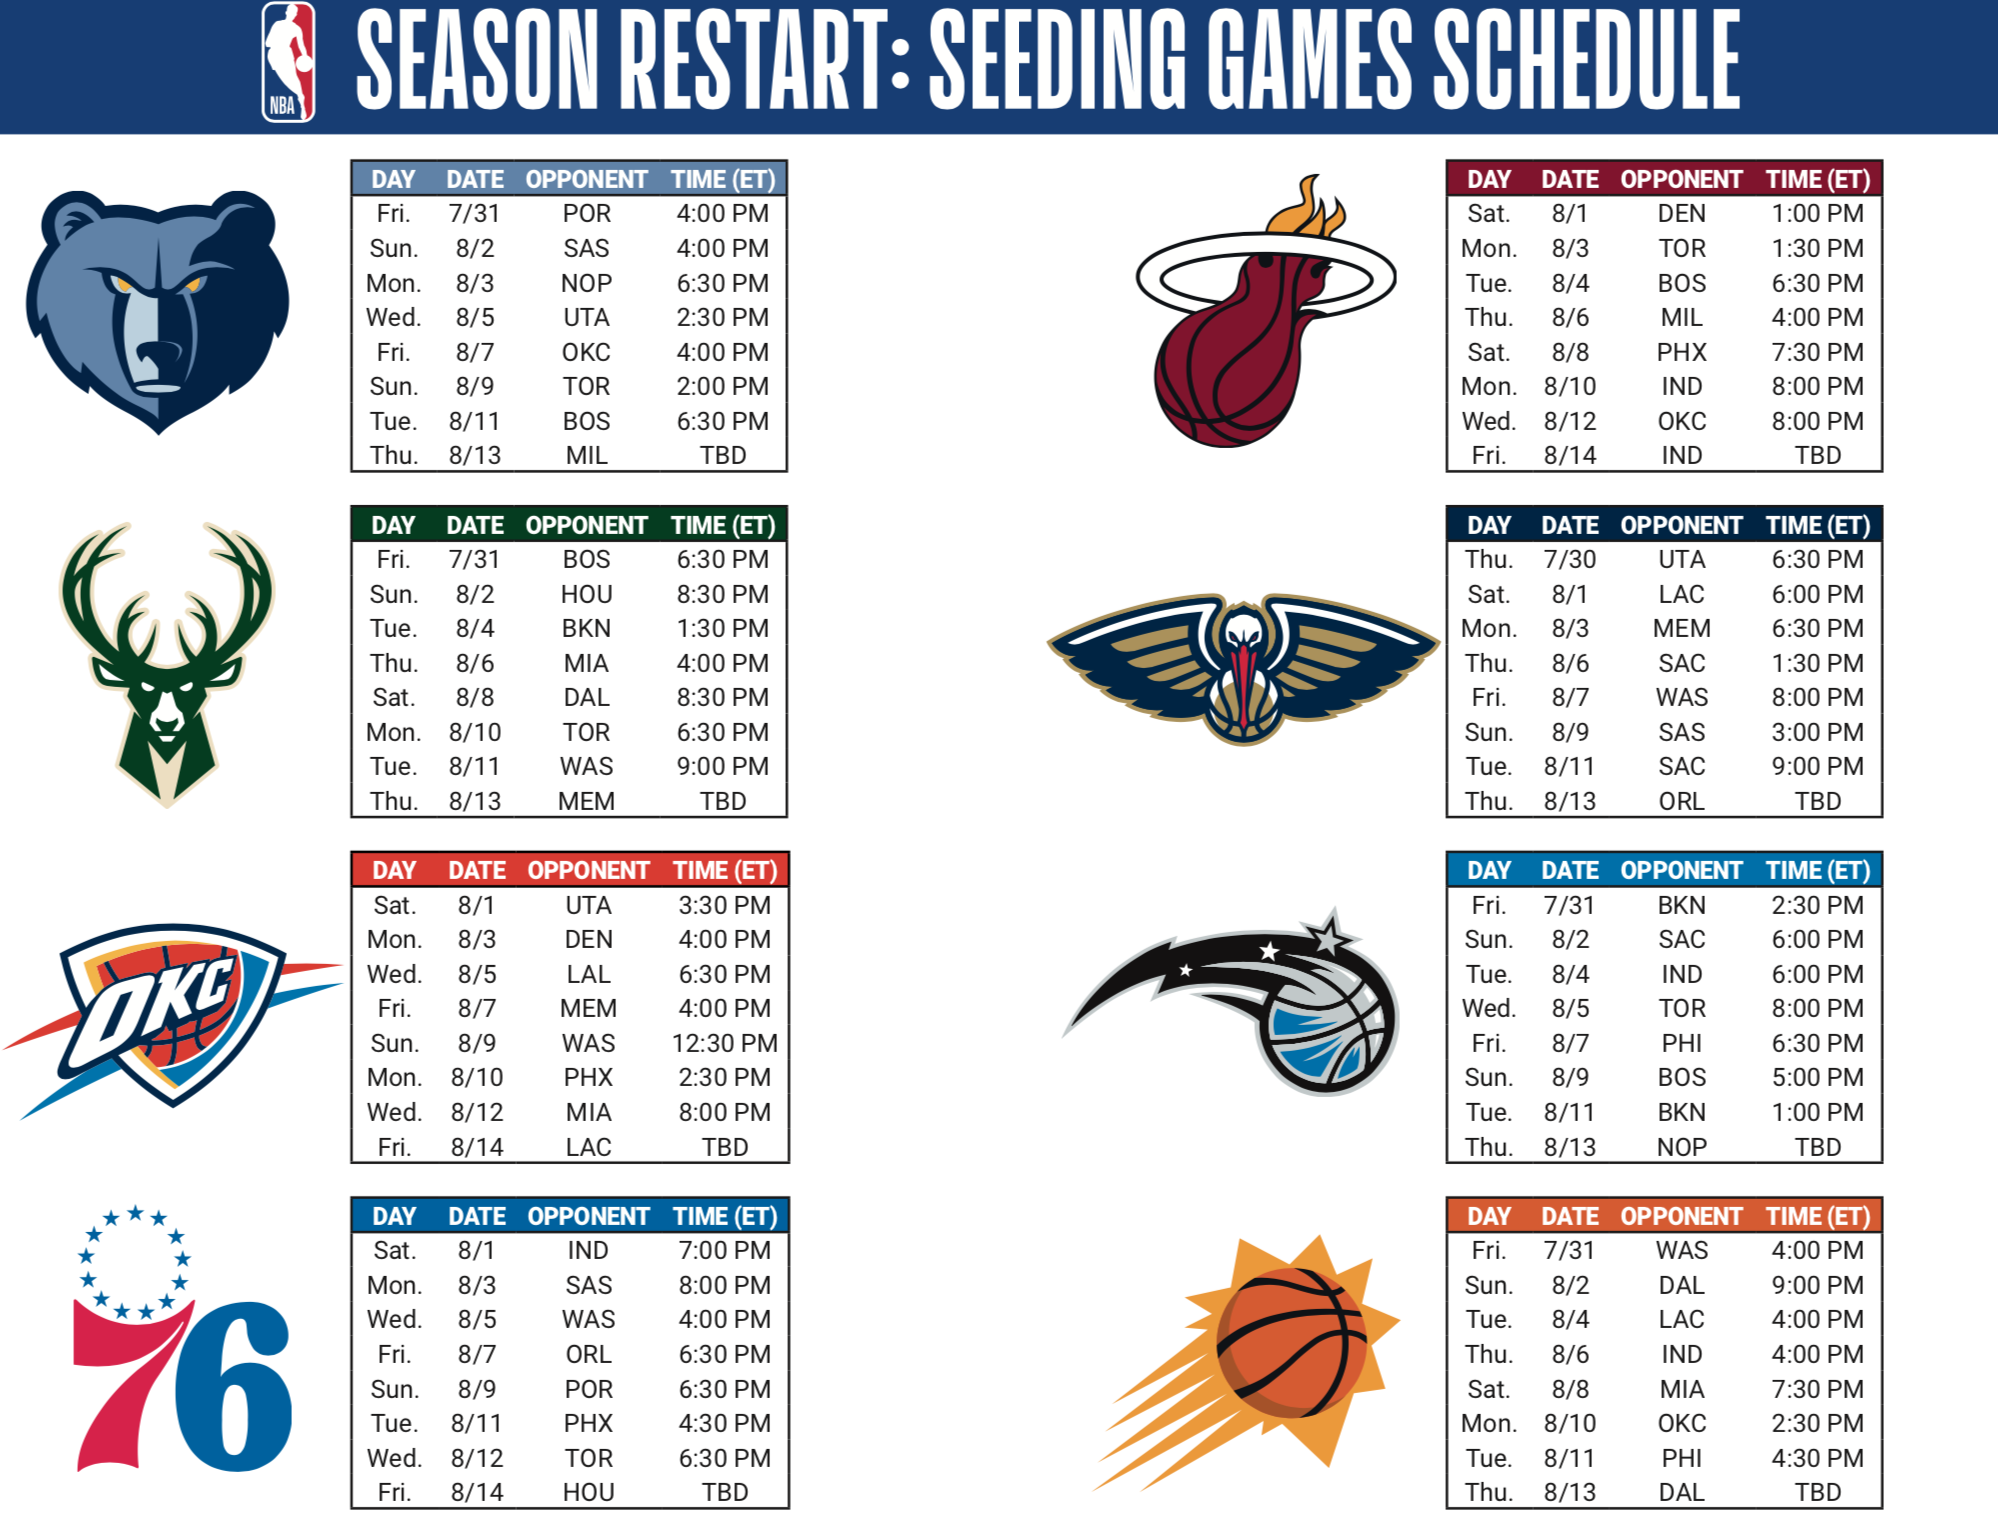 Nba Season Restart 2020 Schedule For 8 Game Seeding Round For Every Team Rsn